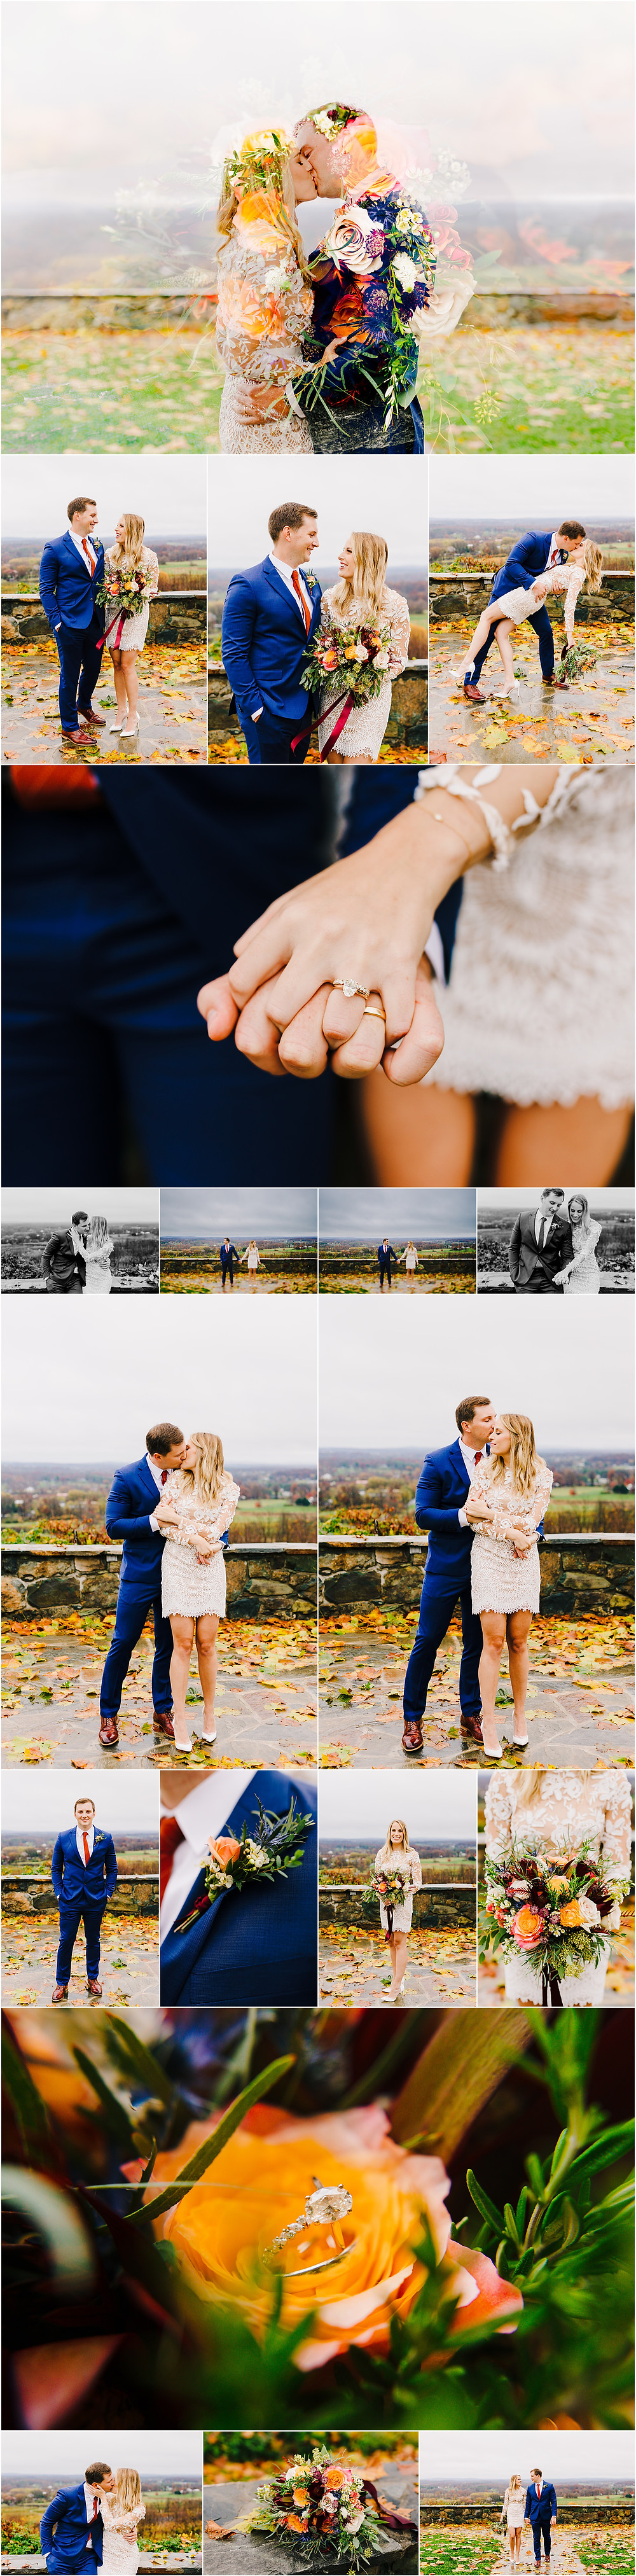 Frederick Maryland Elopement Photographer Colorful Bluemont Vinyard Elopement